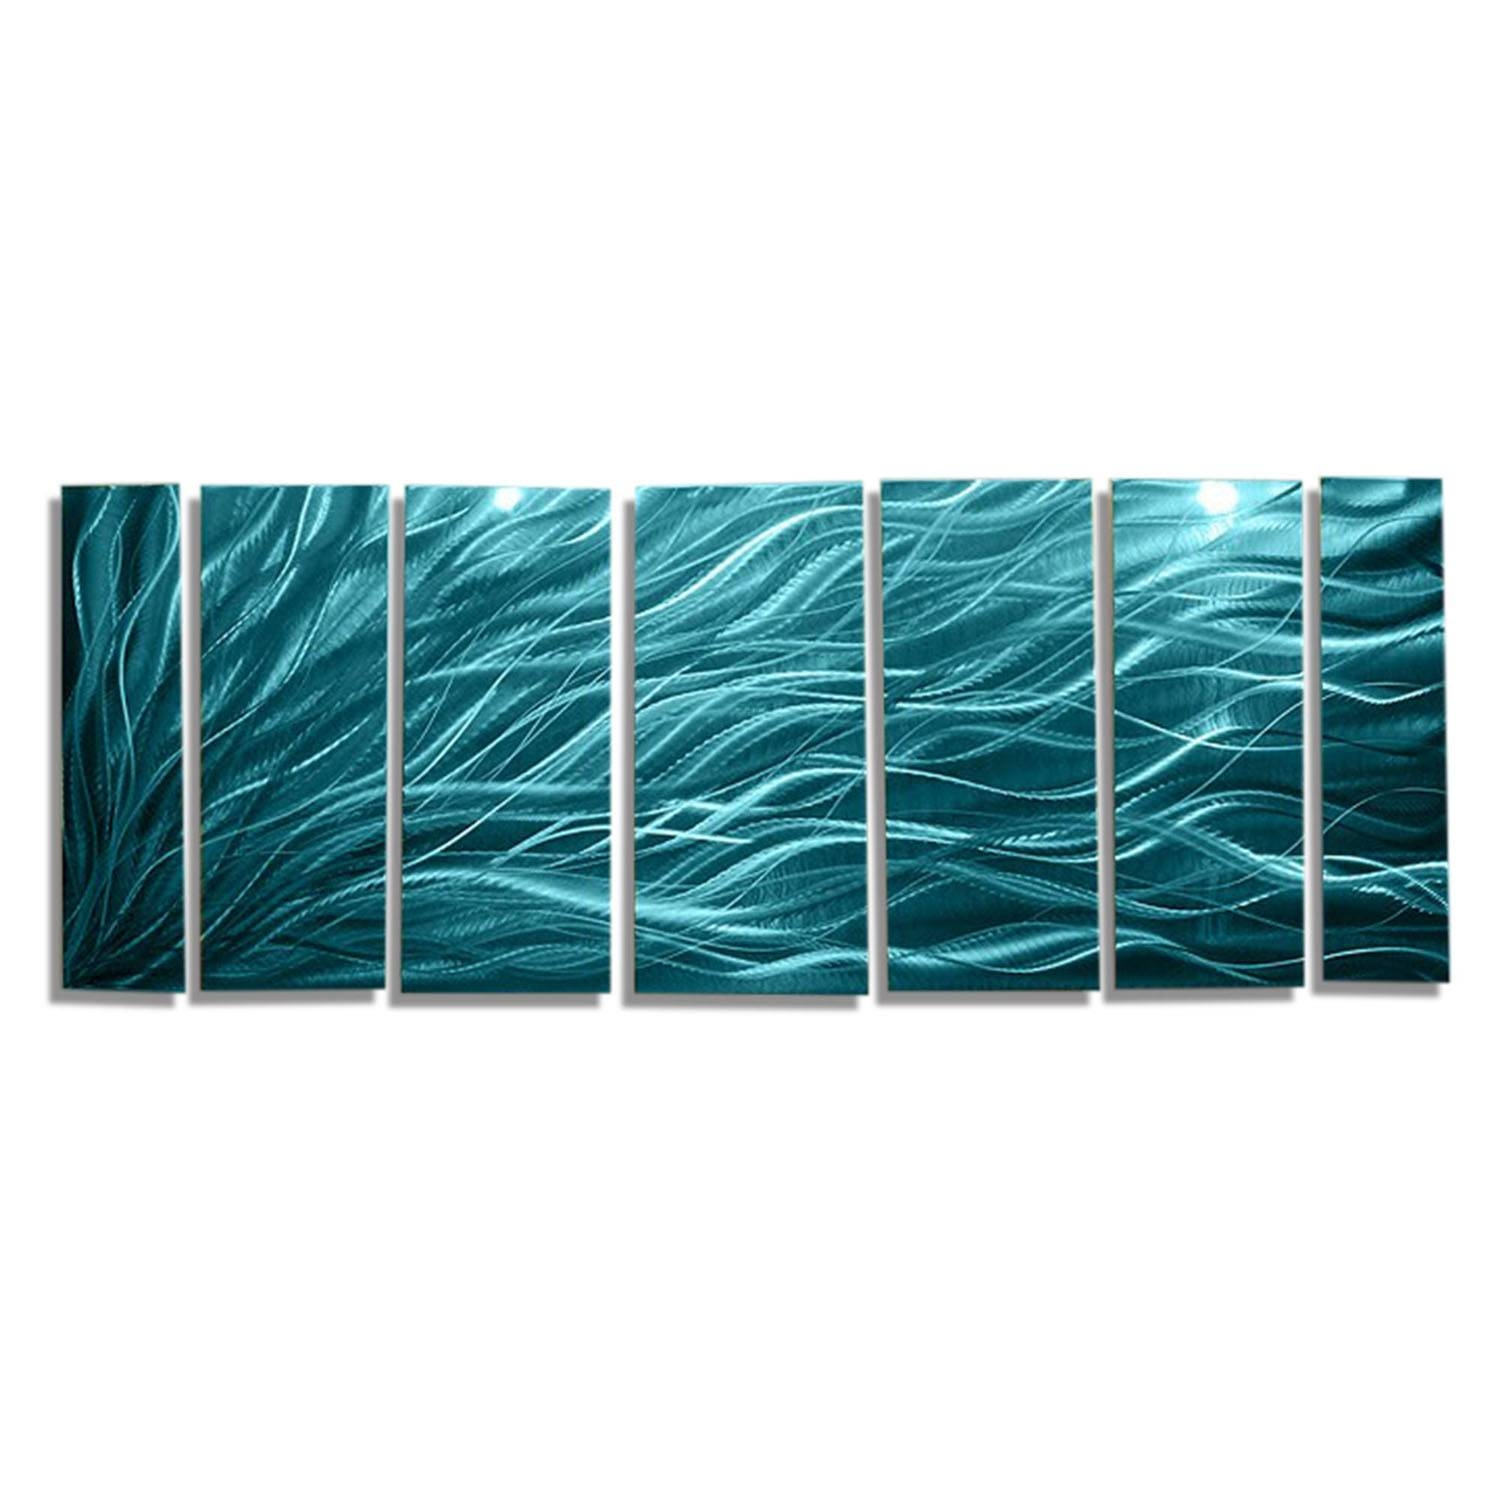 Rays Of Hope Aqua – Large Modern Abstract Metal Wall Artjon Inside Most Recent Large Abstract Metal Wall Art (View 14 of 20)